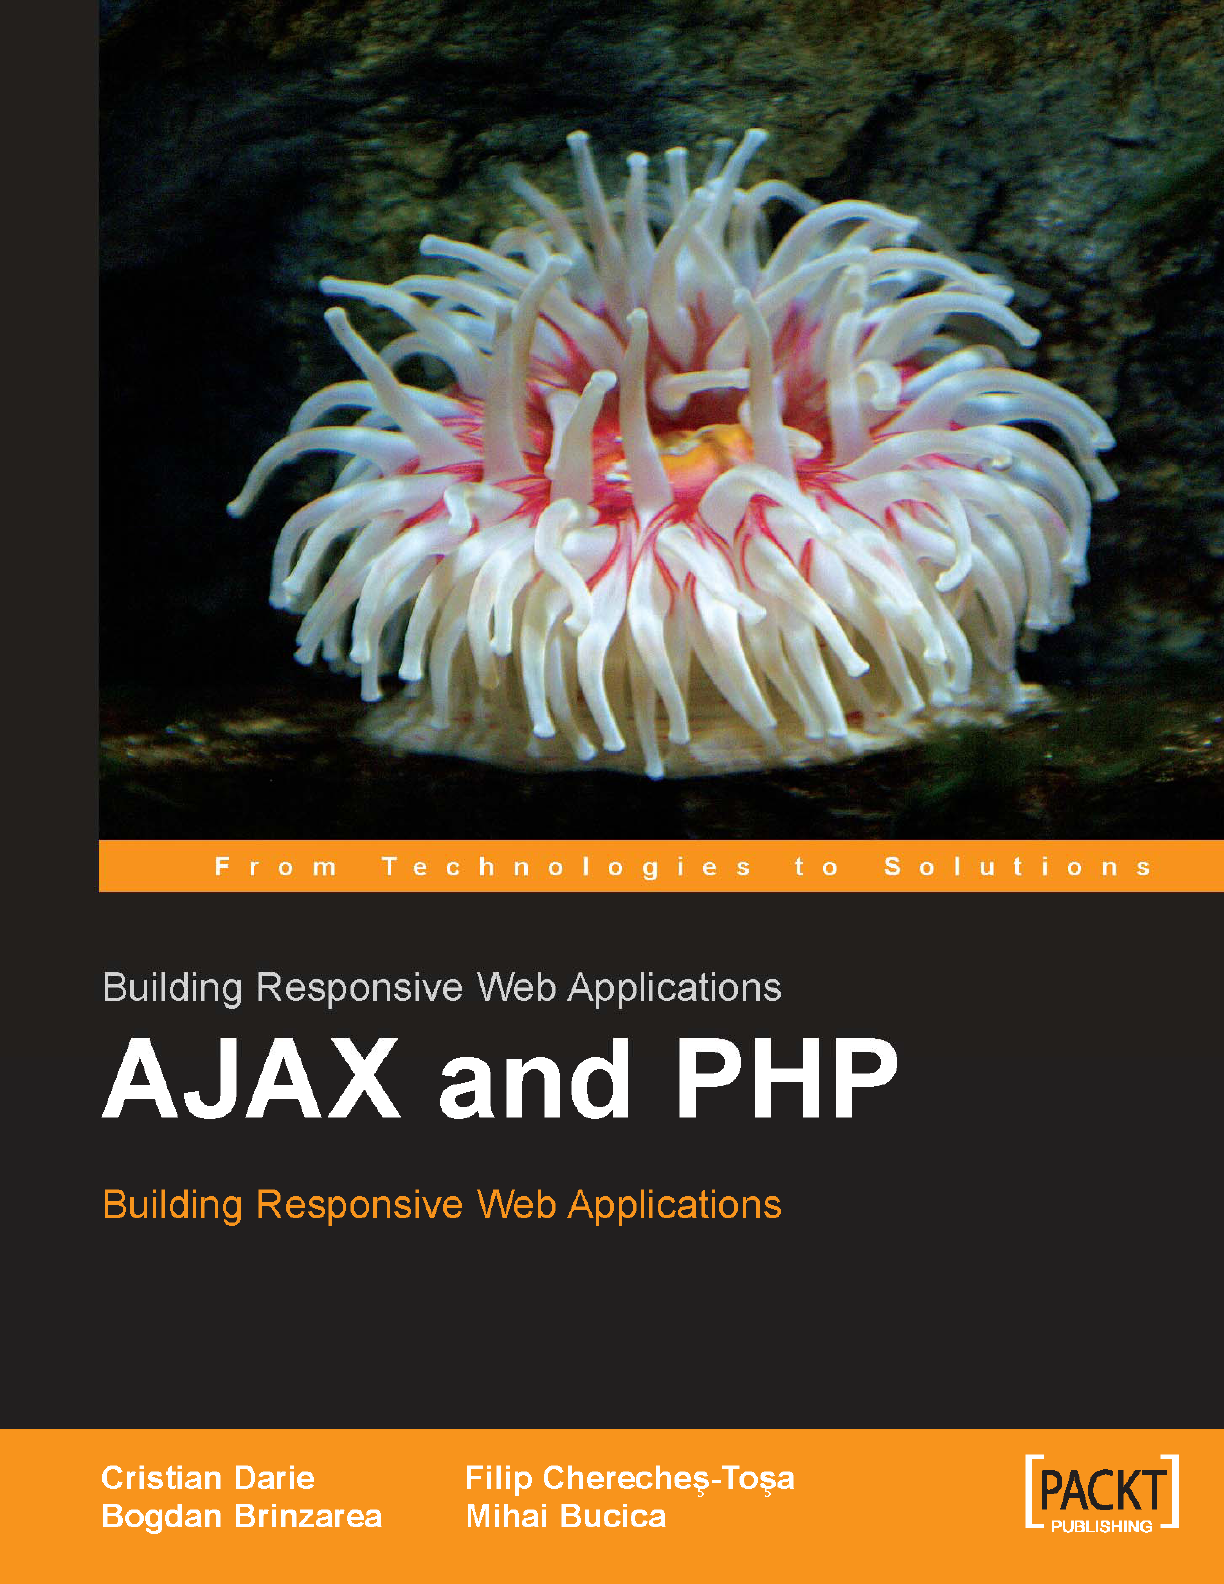 http://www.mediafire.com/view/bq597fx30yo93b7/AJAX_And_PHP_Building_Responsive_Web_Applications__2006.pdf